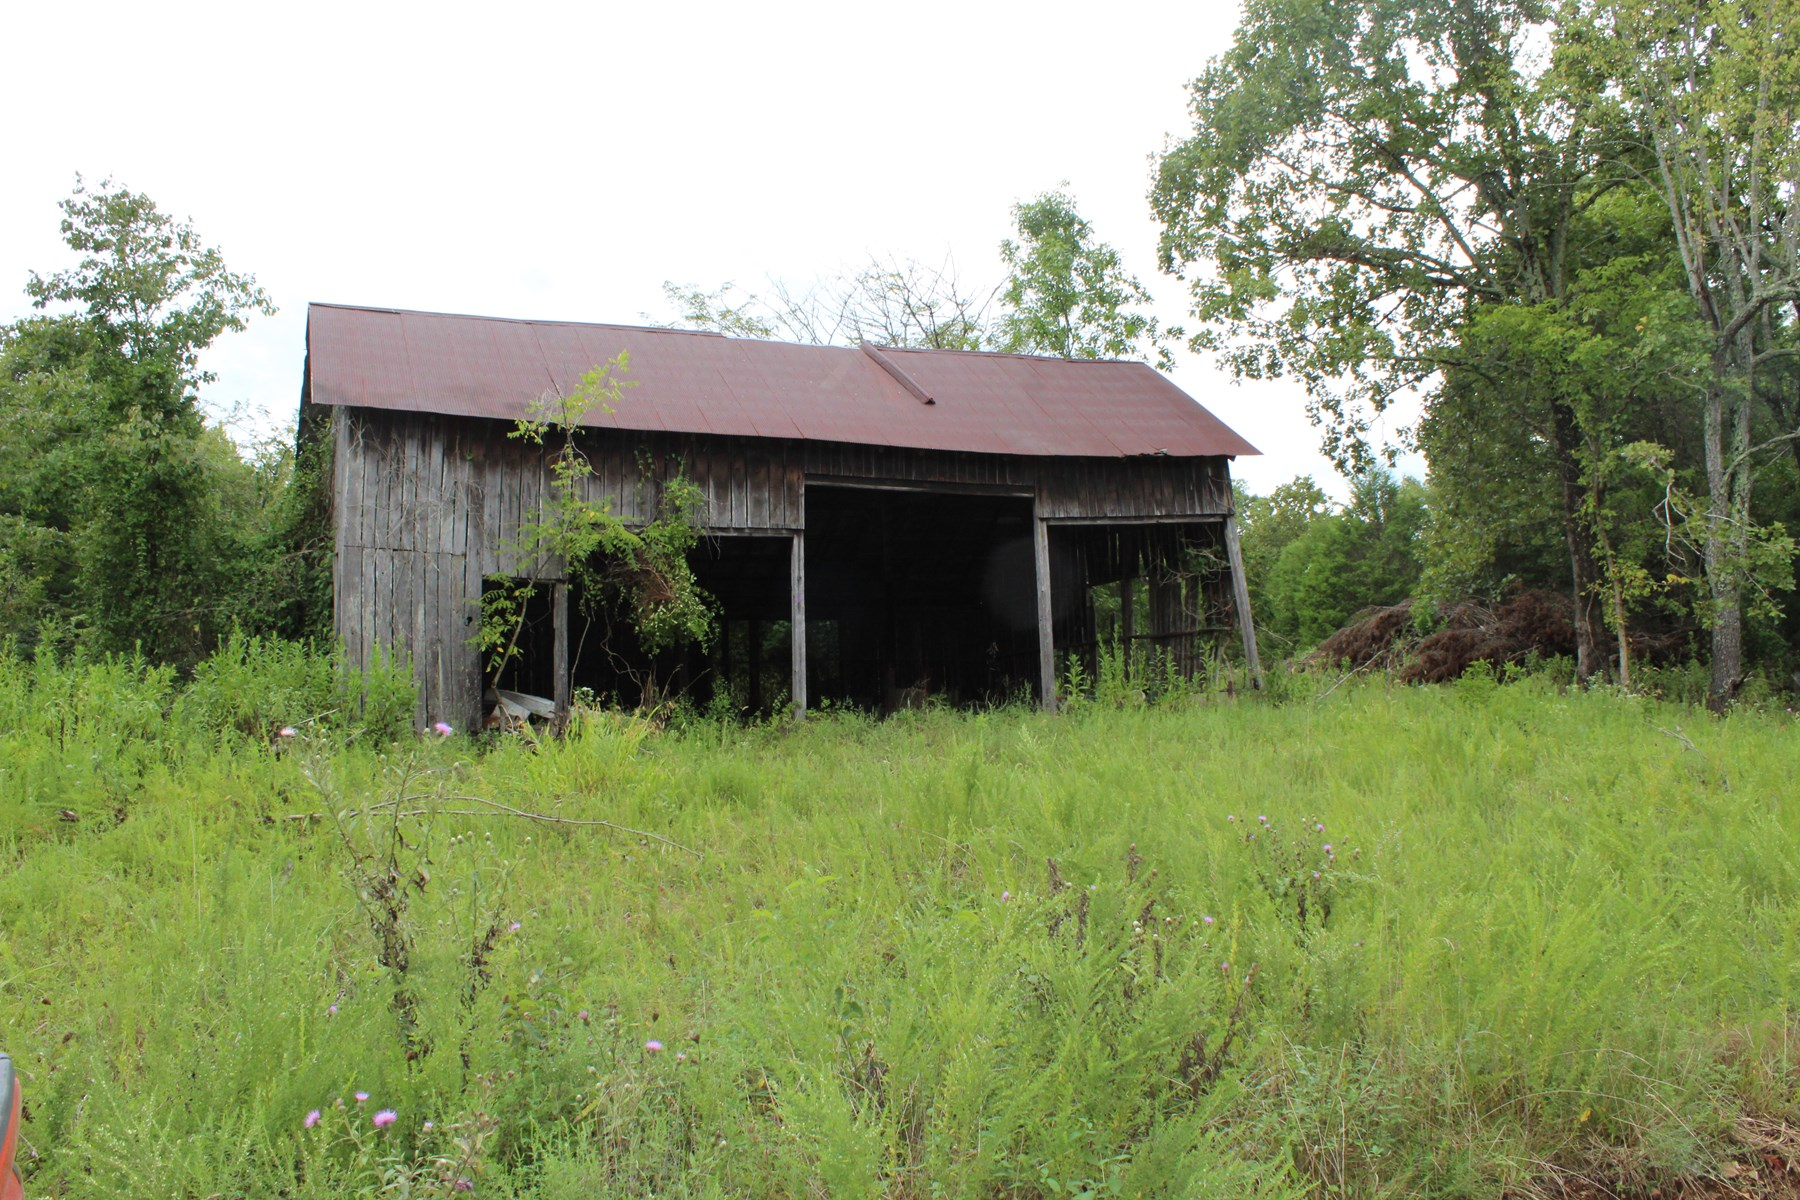 Southern Missouri Land for Sale - Off Grid - Hunting